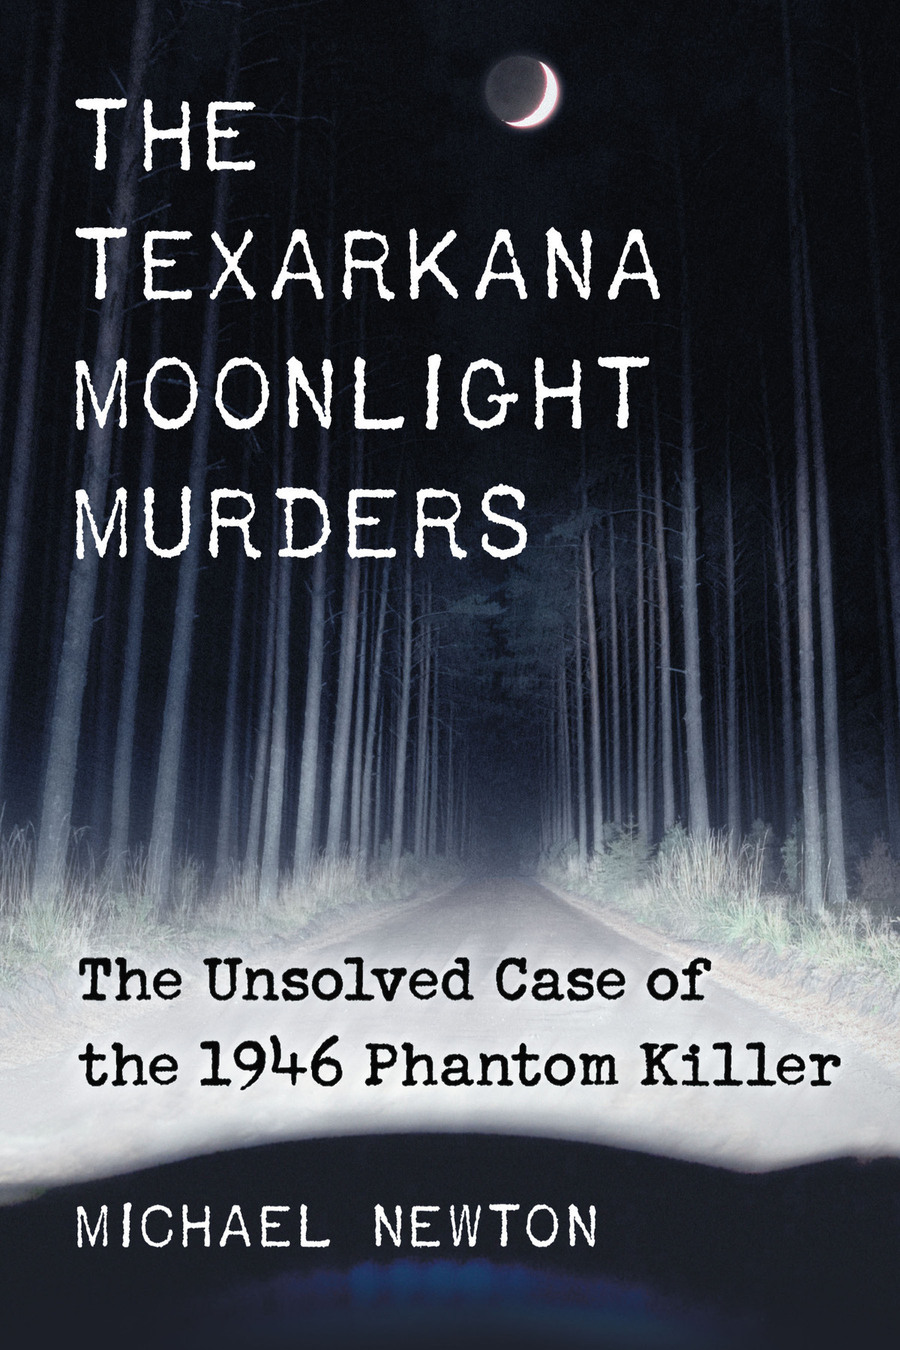 The Texarkana Moonlight Murders